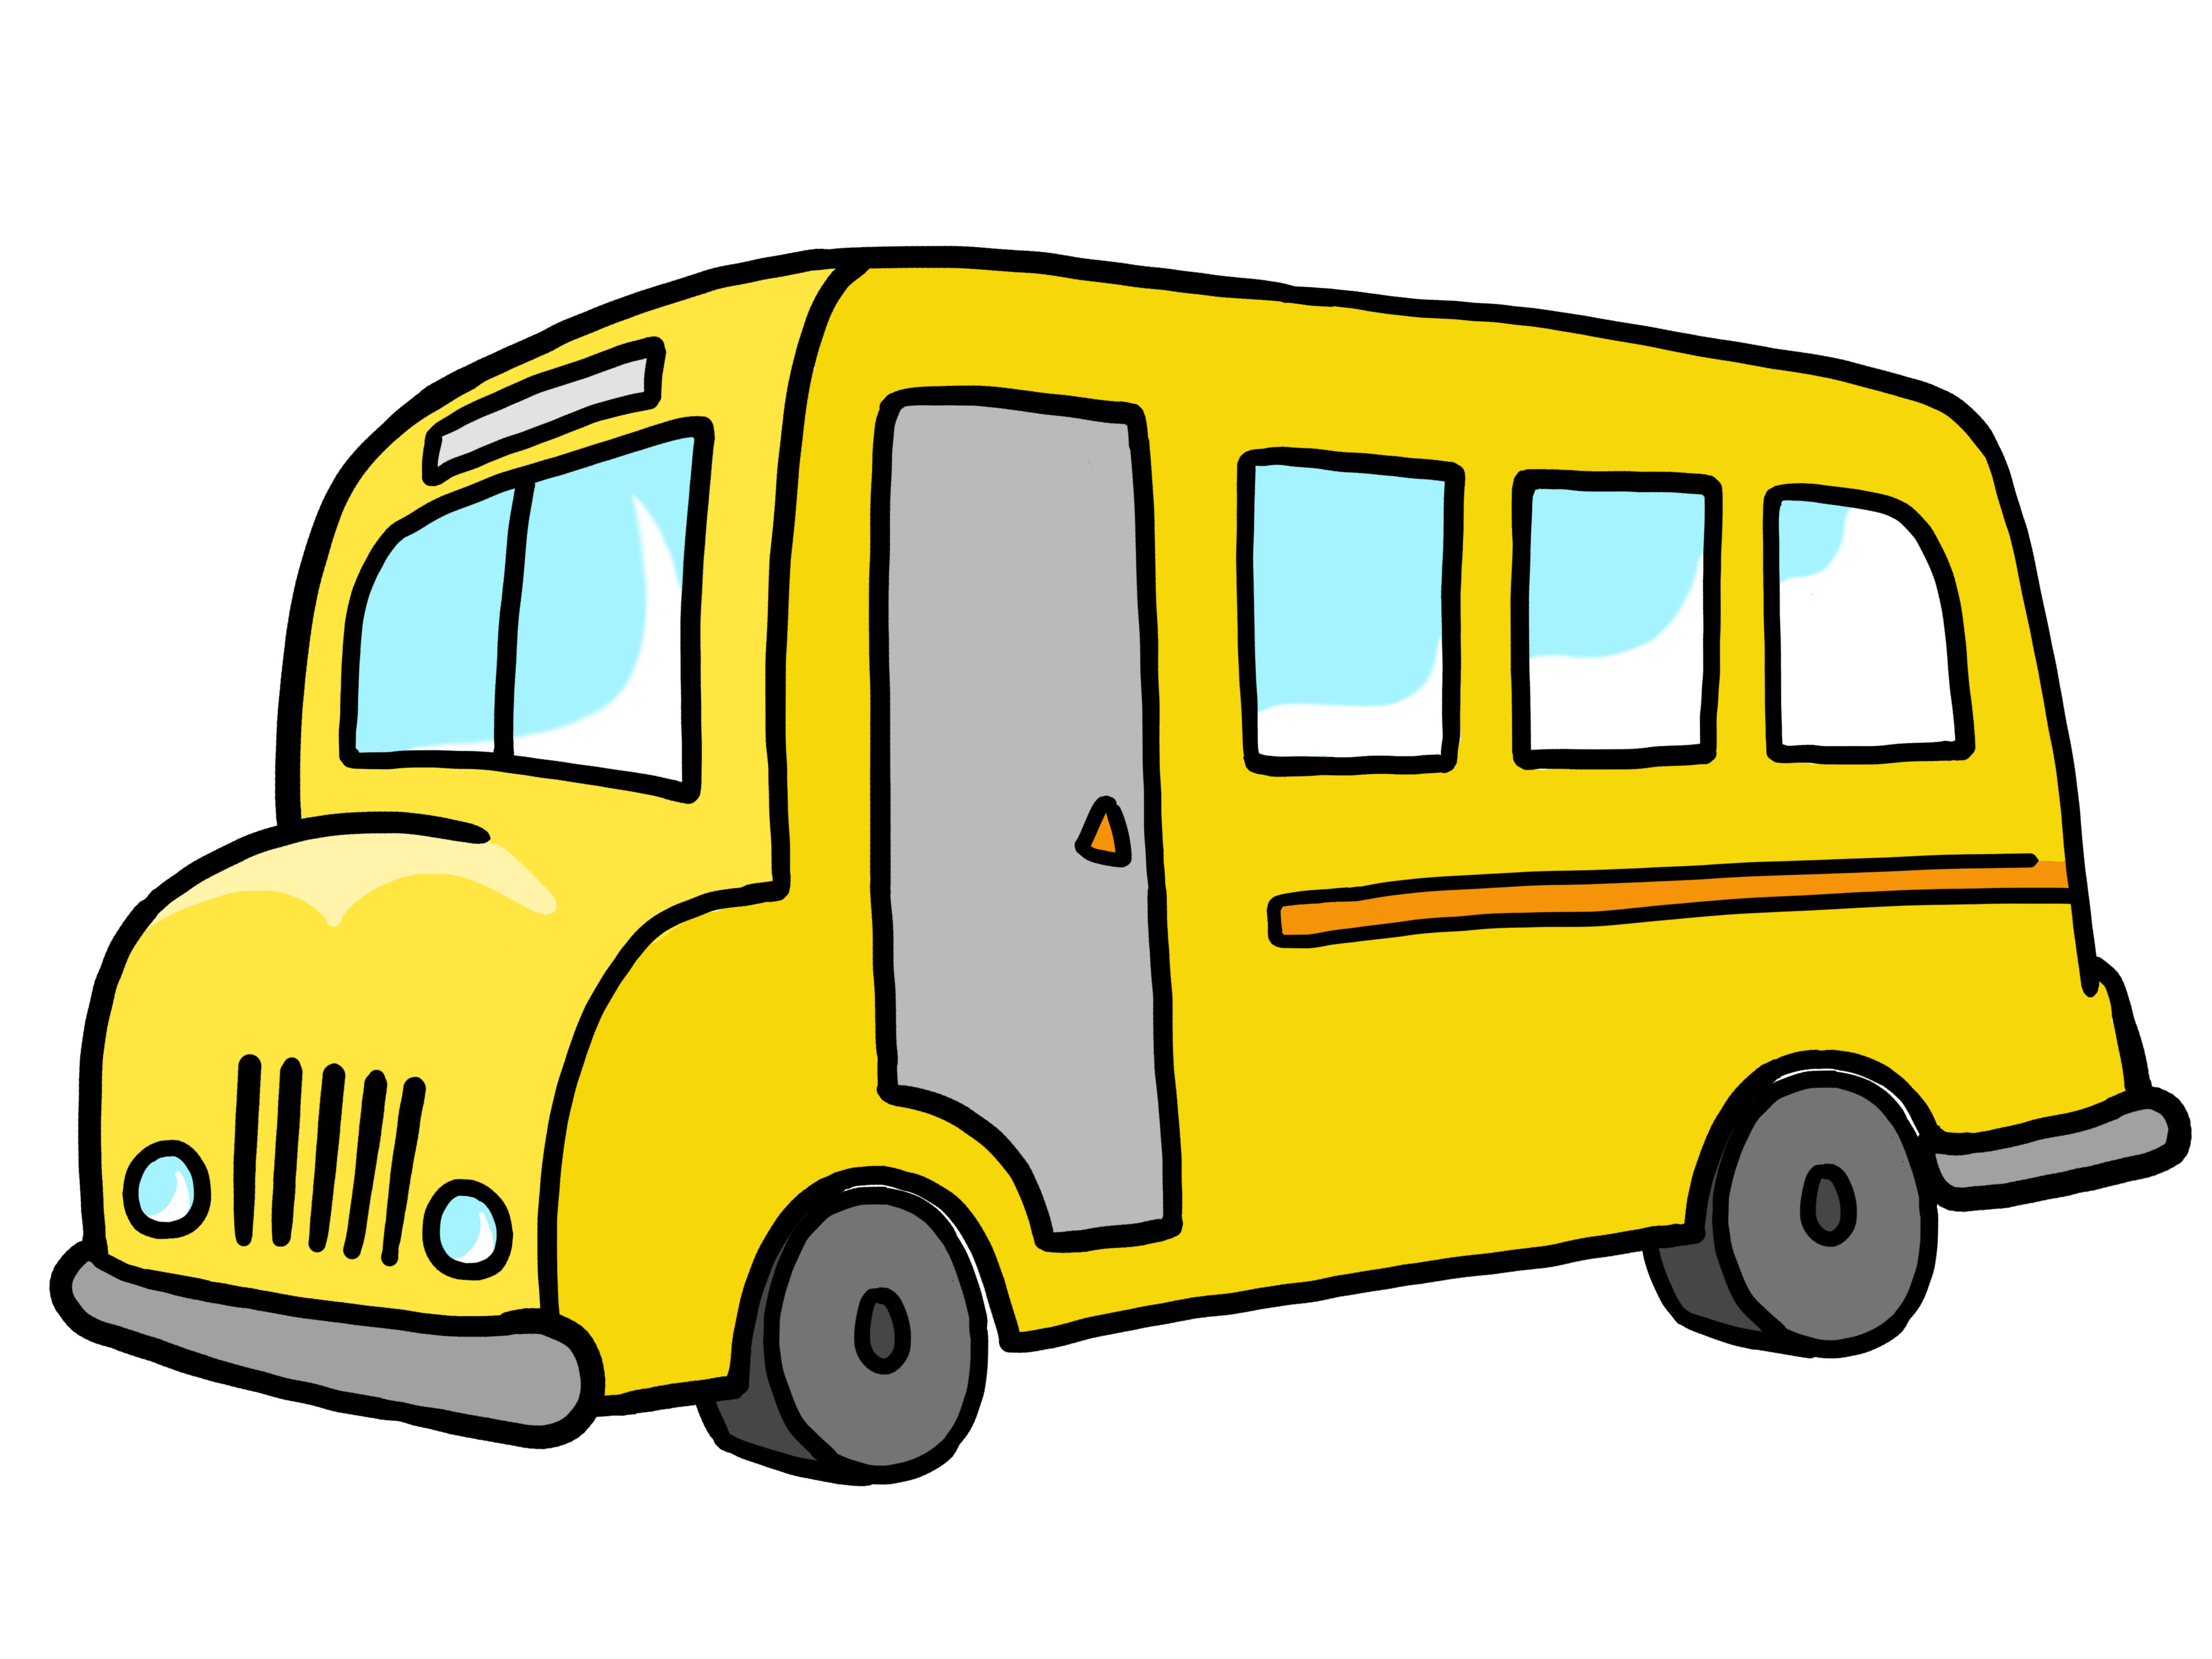 Funny school bus clipart jpg free library Bus Transportation Clipart jpg free library